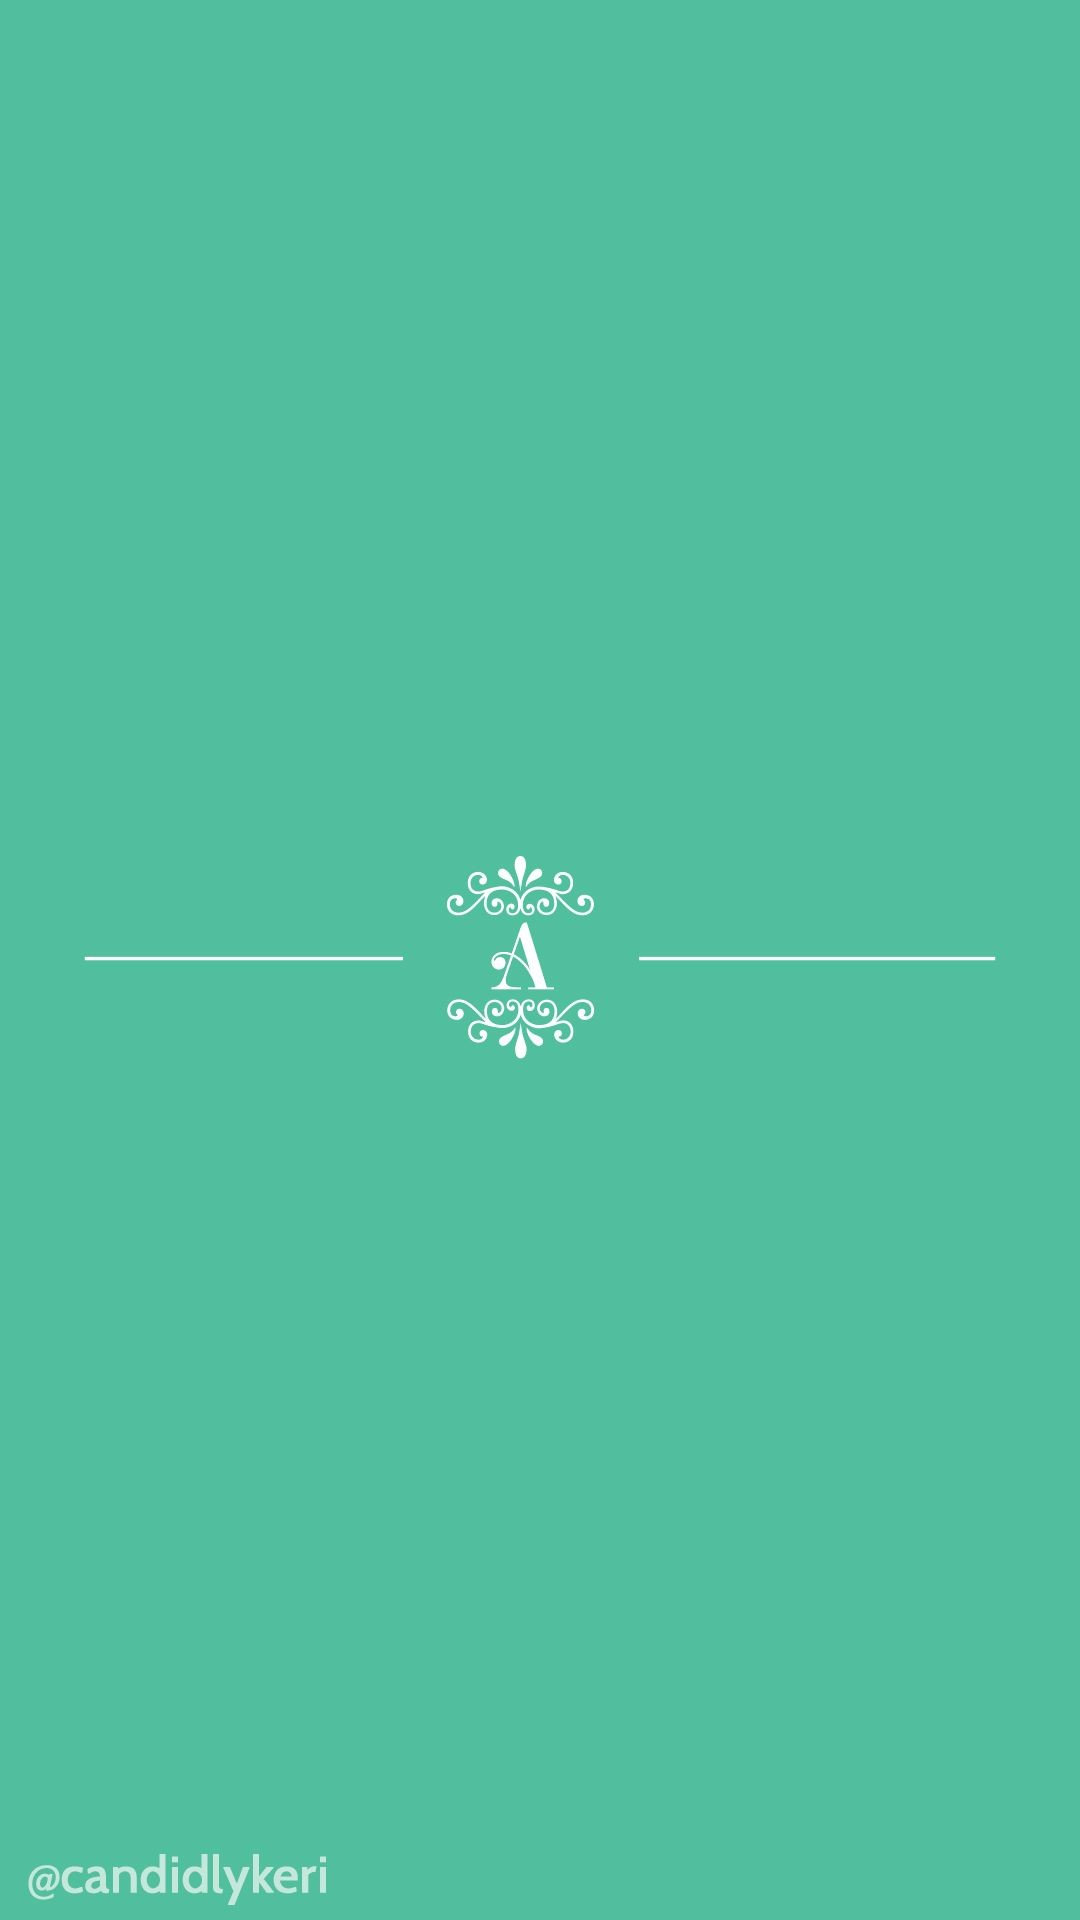 Res: 1080x1920, April 2016 Wallpaper Free Download for mobile, iphone and android, A  Monogram with mint